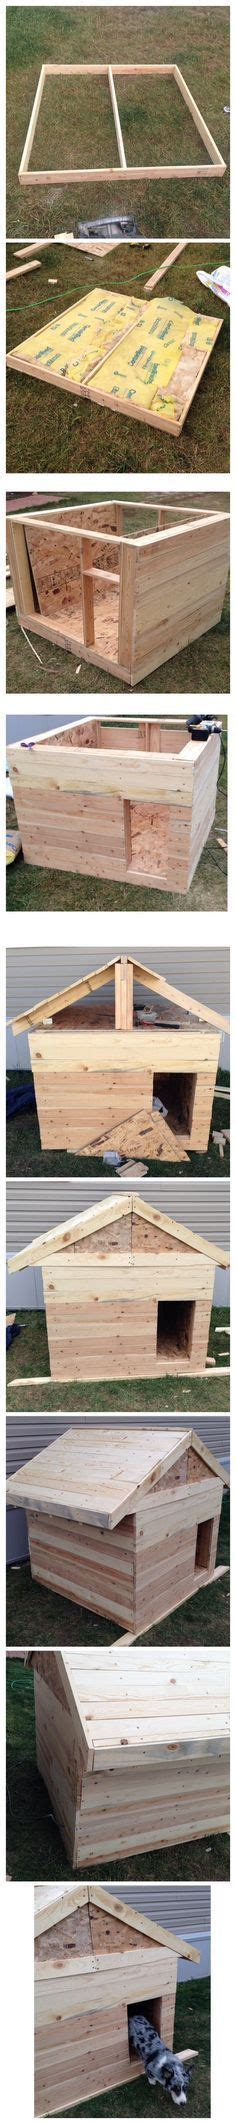 build a heated dog house best 25 insulated dog houses ideas on pinterest